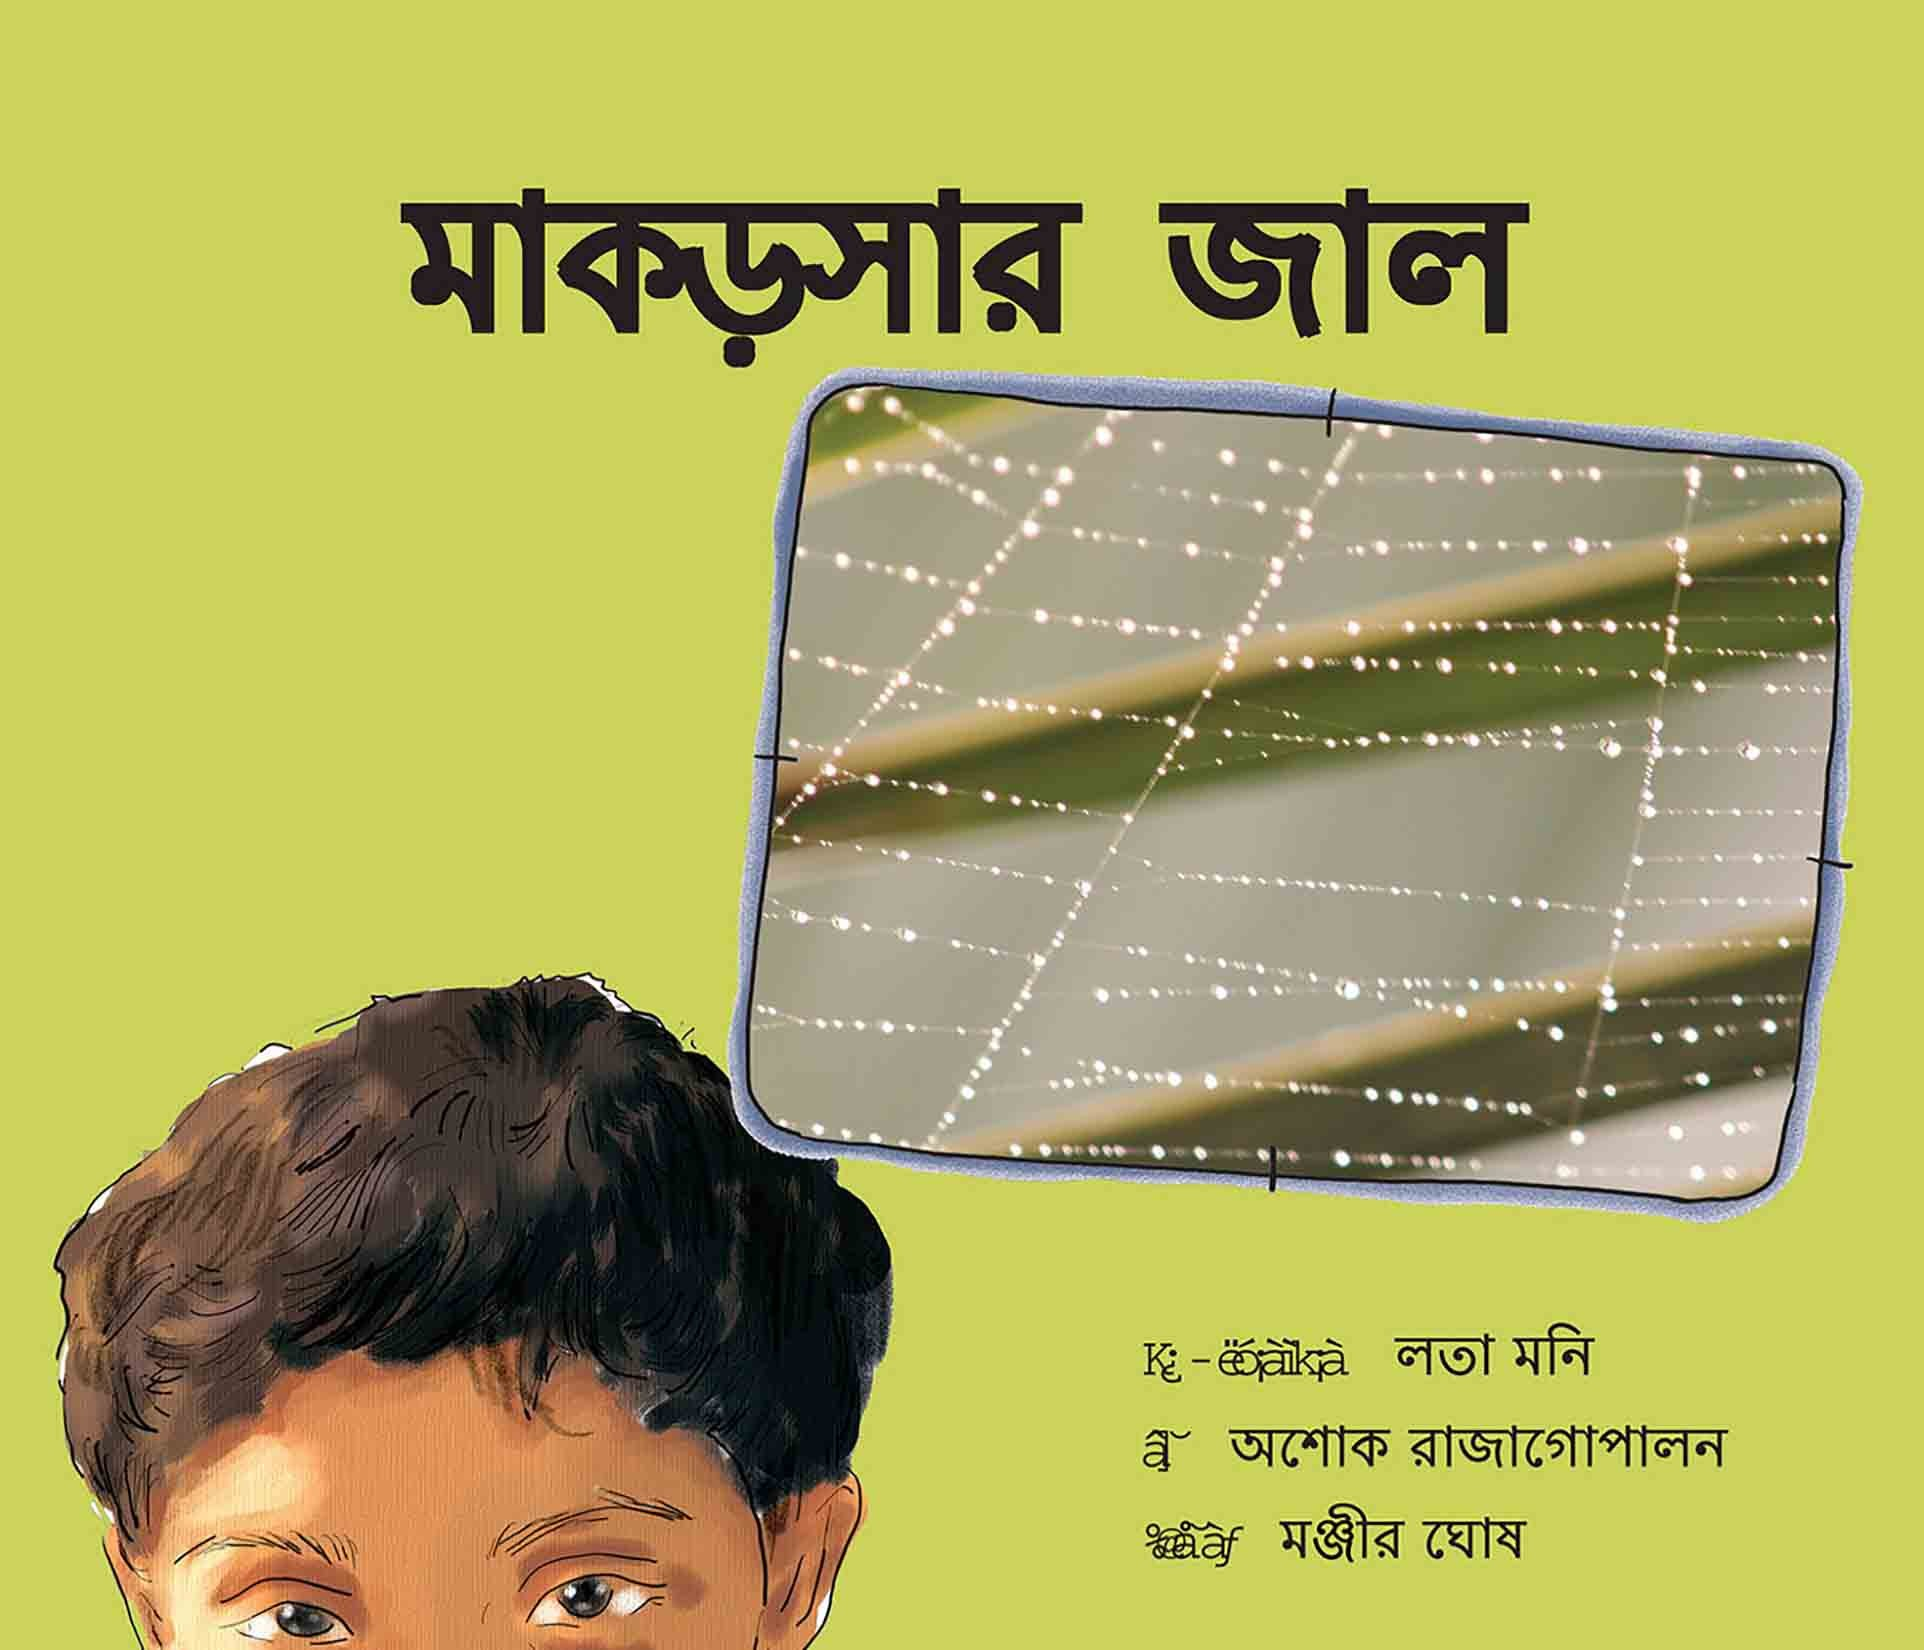 The Spider's Web/Maakorshaar Jaal (Bengali)